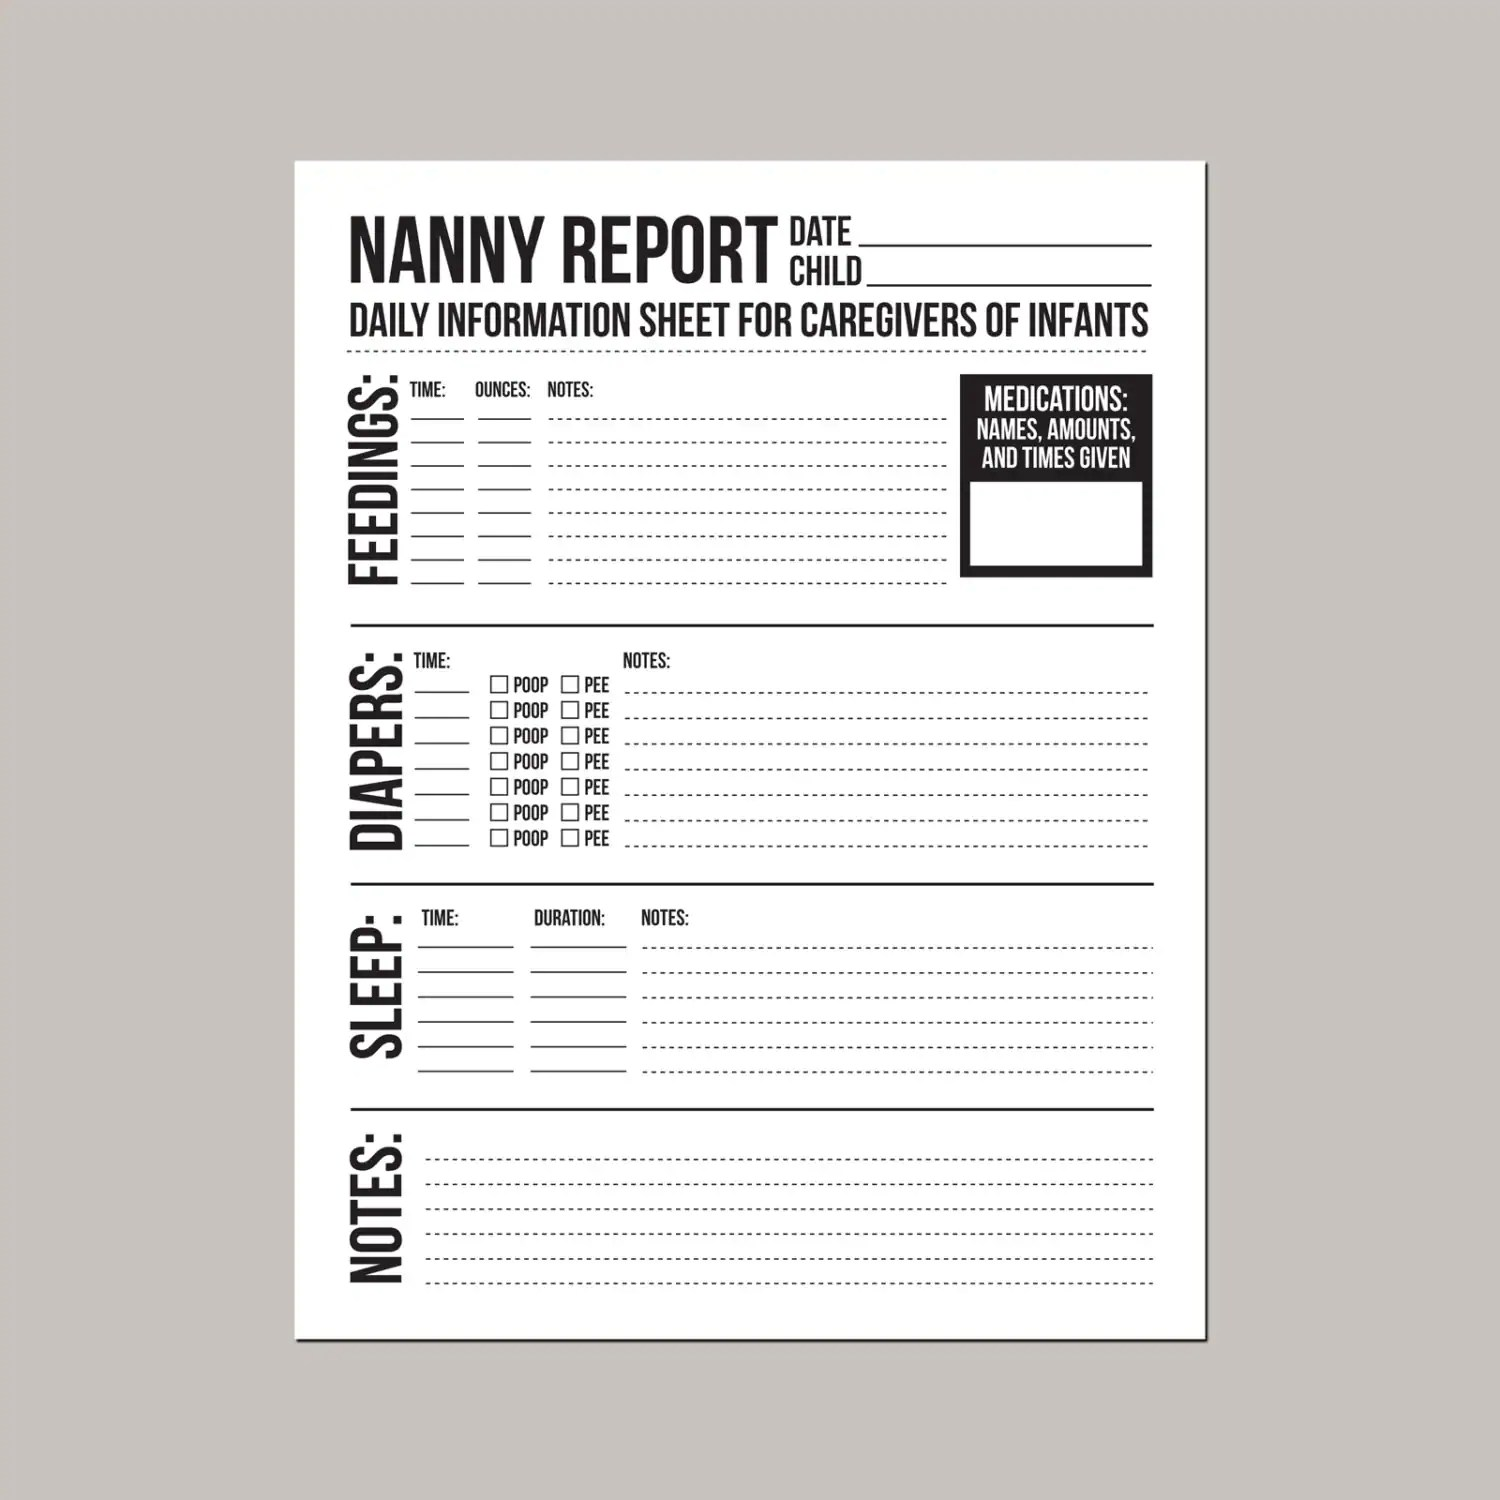 Nanny Report Daily Information Sheet For Caregivers Of